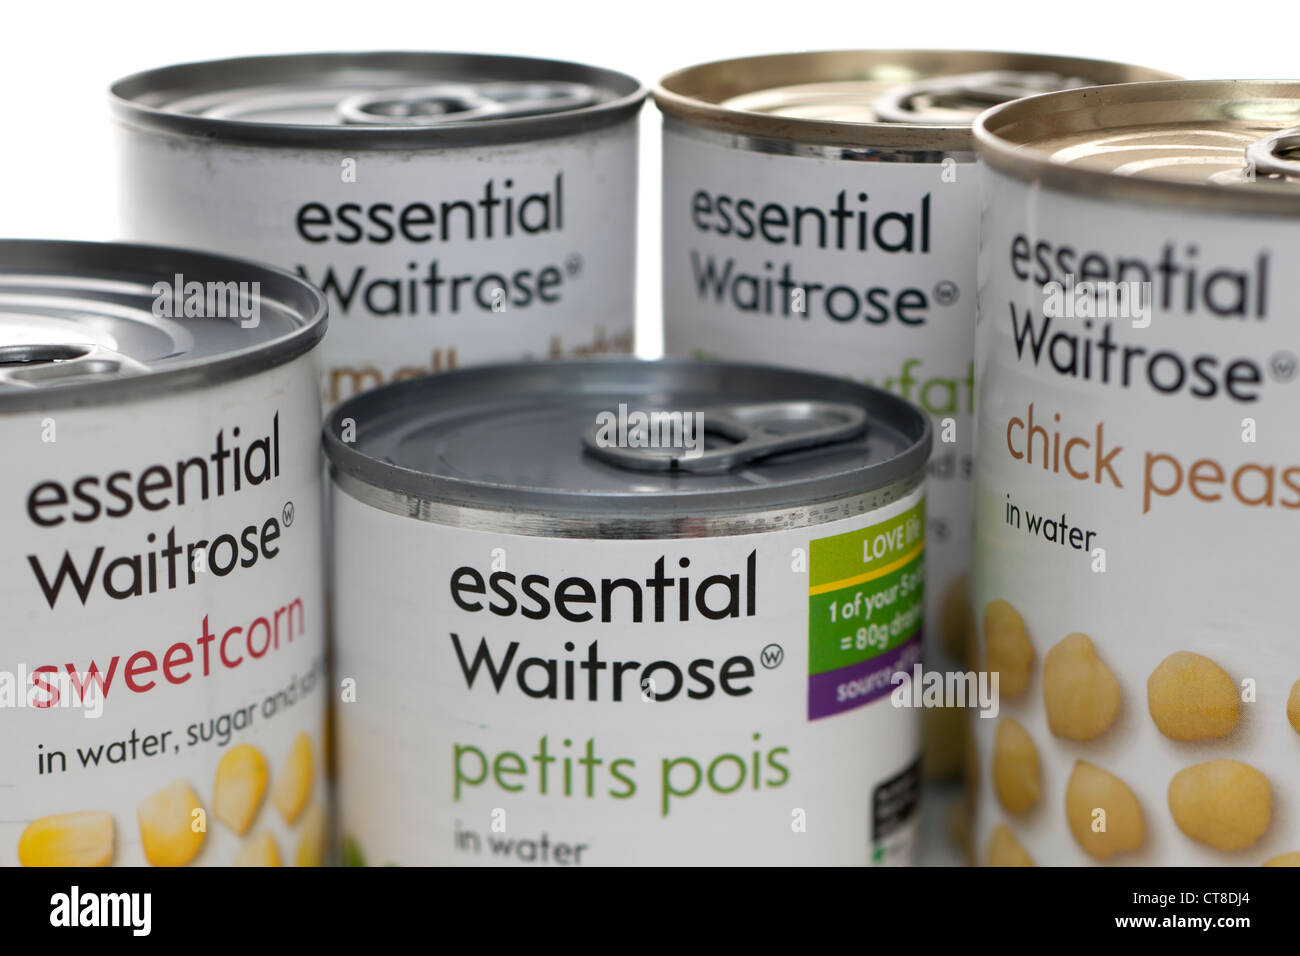 Essential Waitrose products - Stock Image